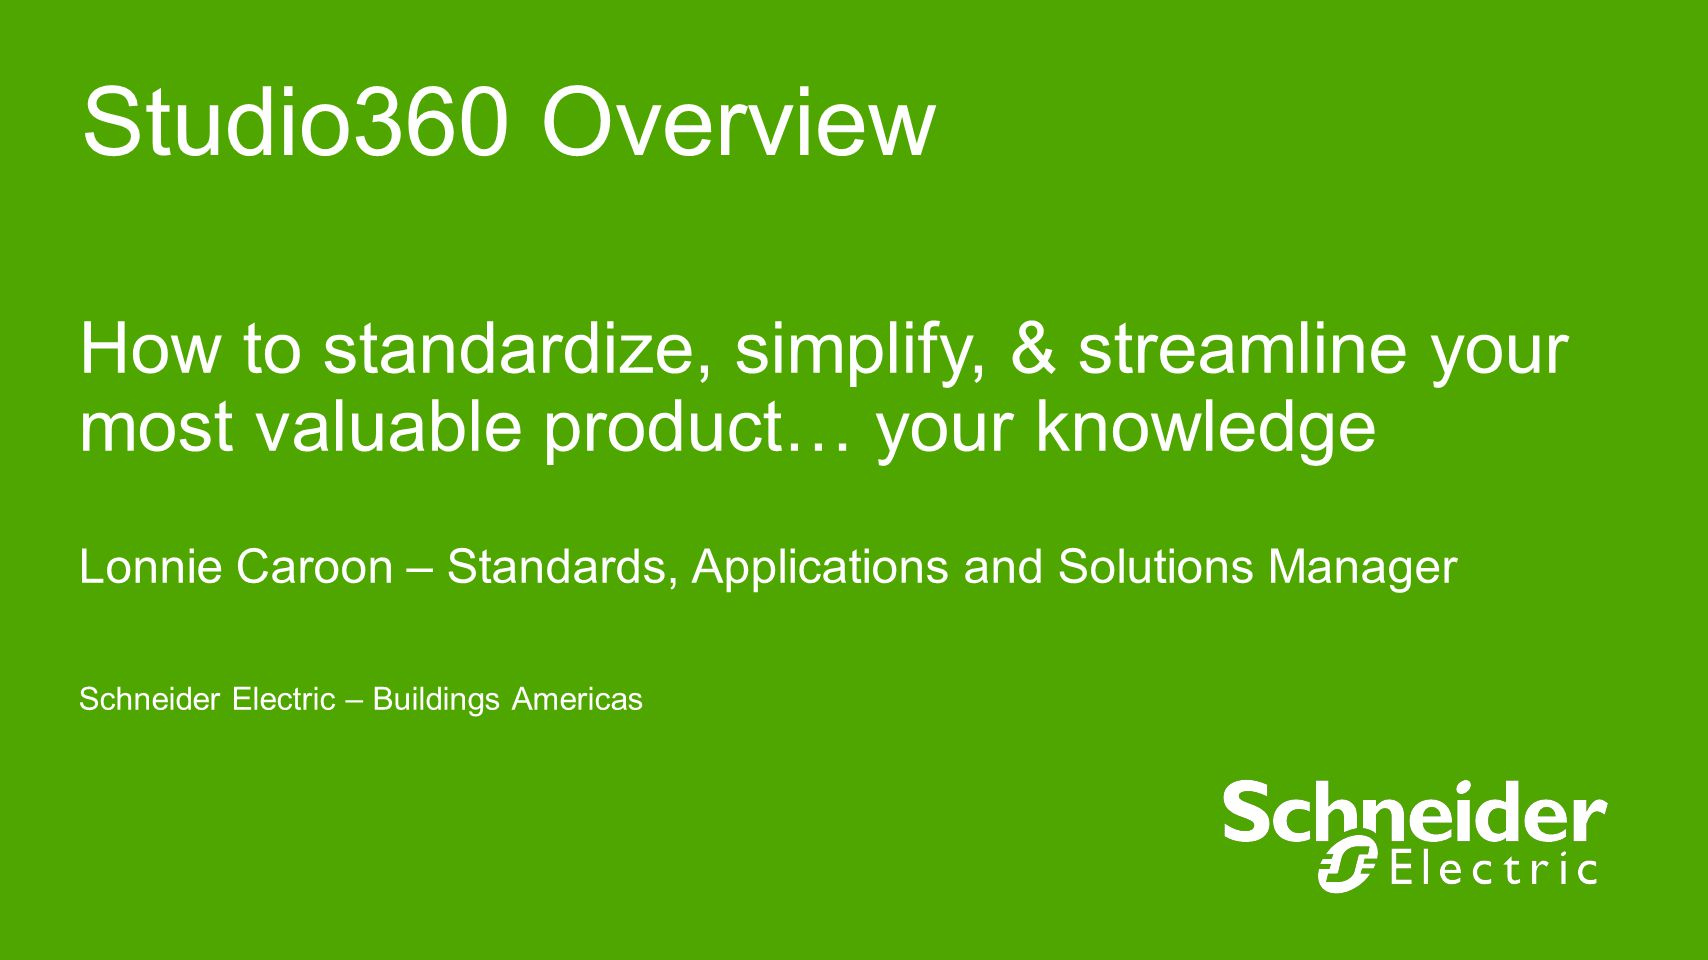 Studio360 Overview How to standardize, simplify, & streamline your most valuable product… your knowledge.